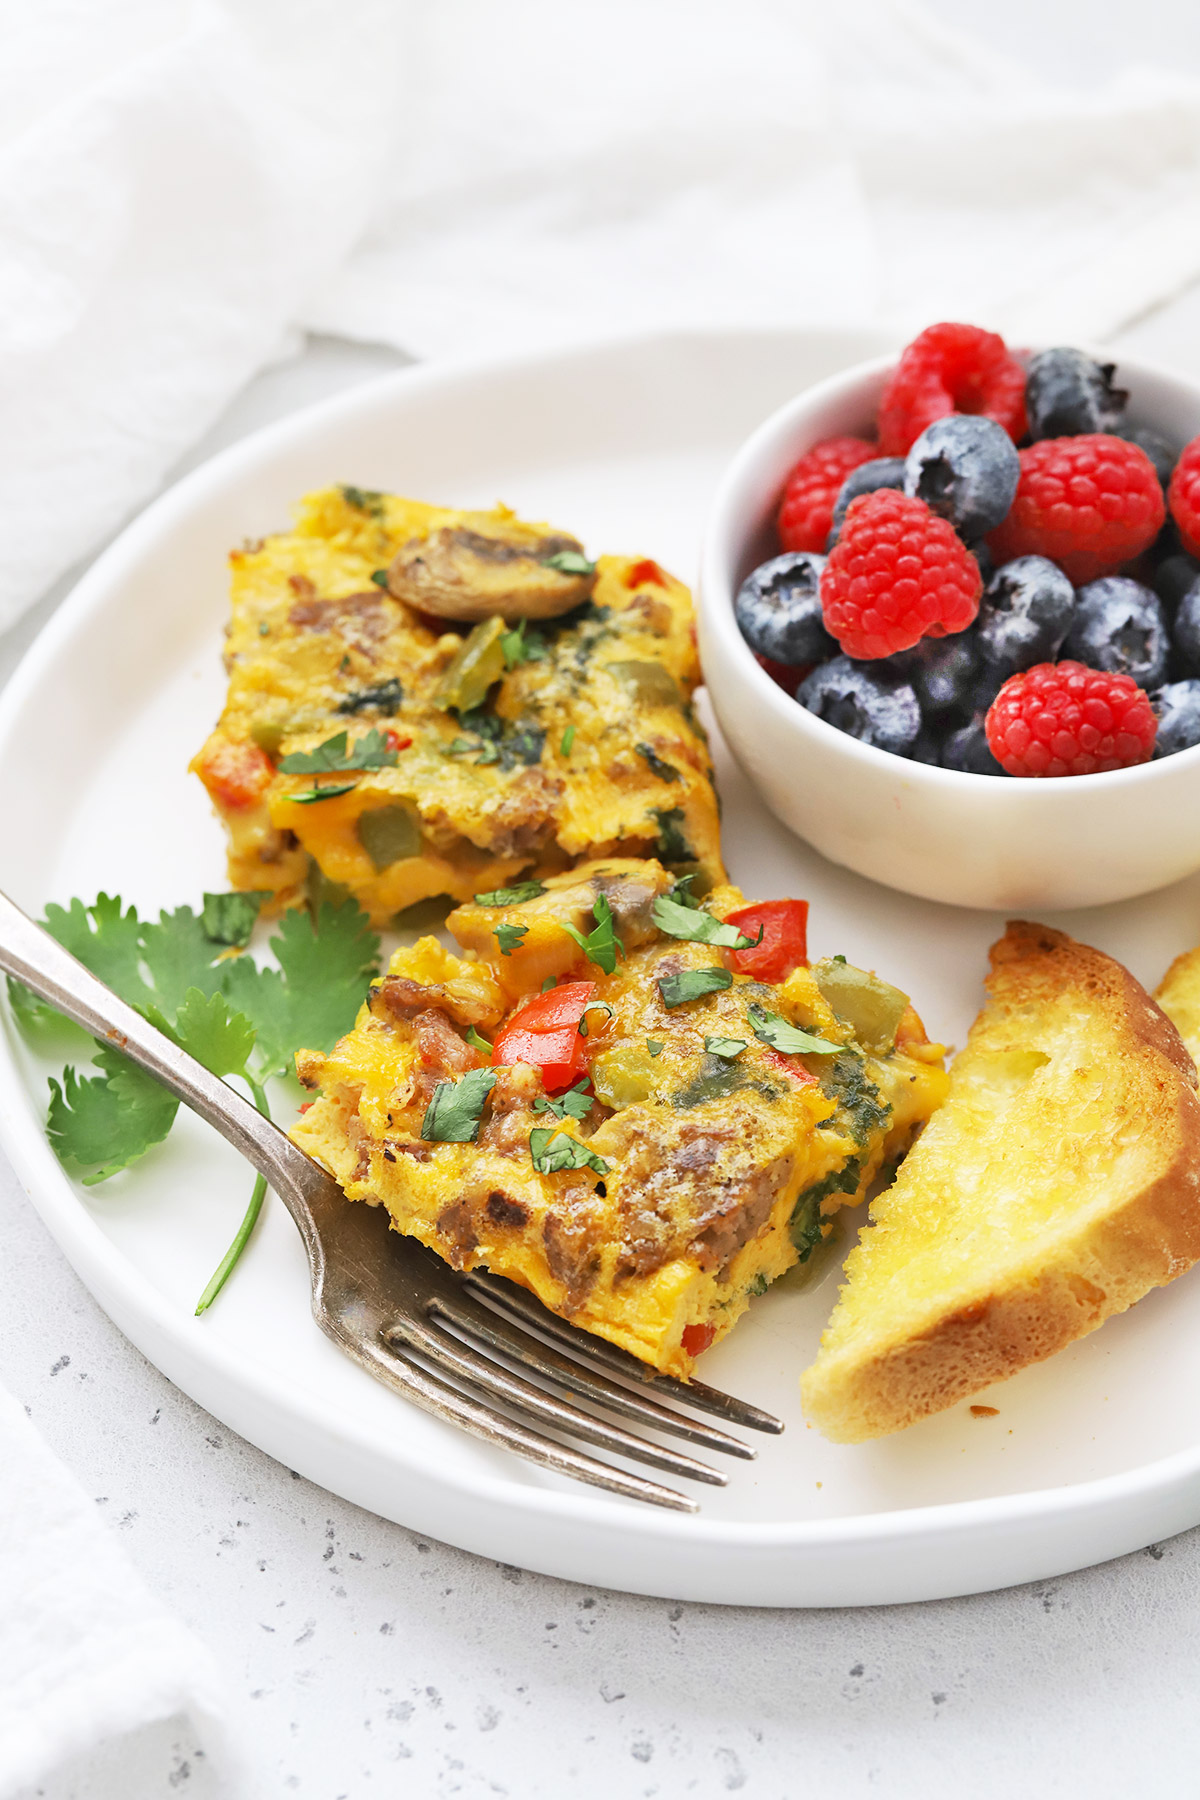 Two slices of sausage and veggie breakfast casserole on a plate with fresh berries and gluten free toast